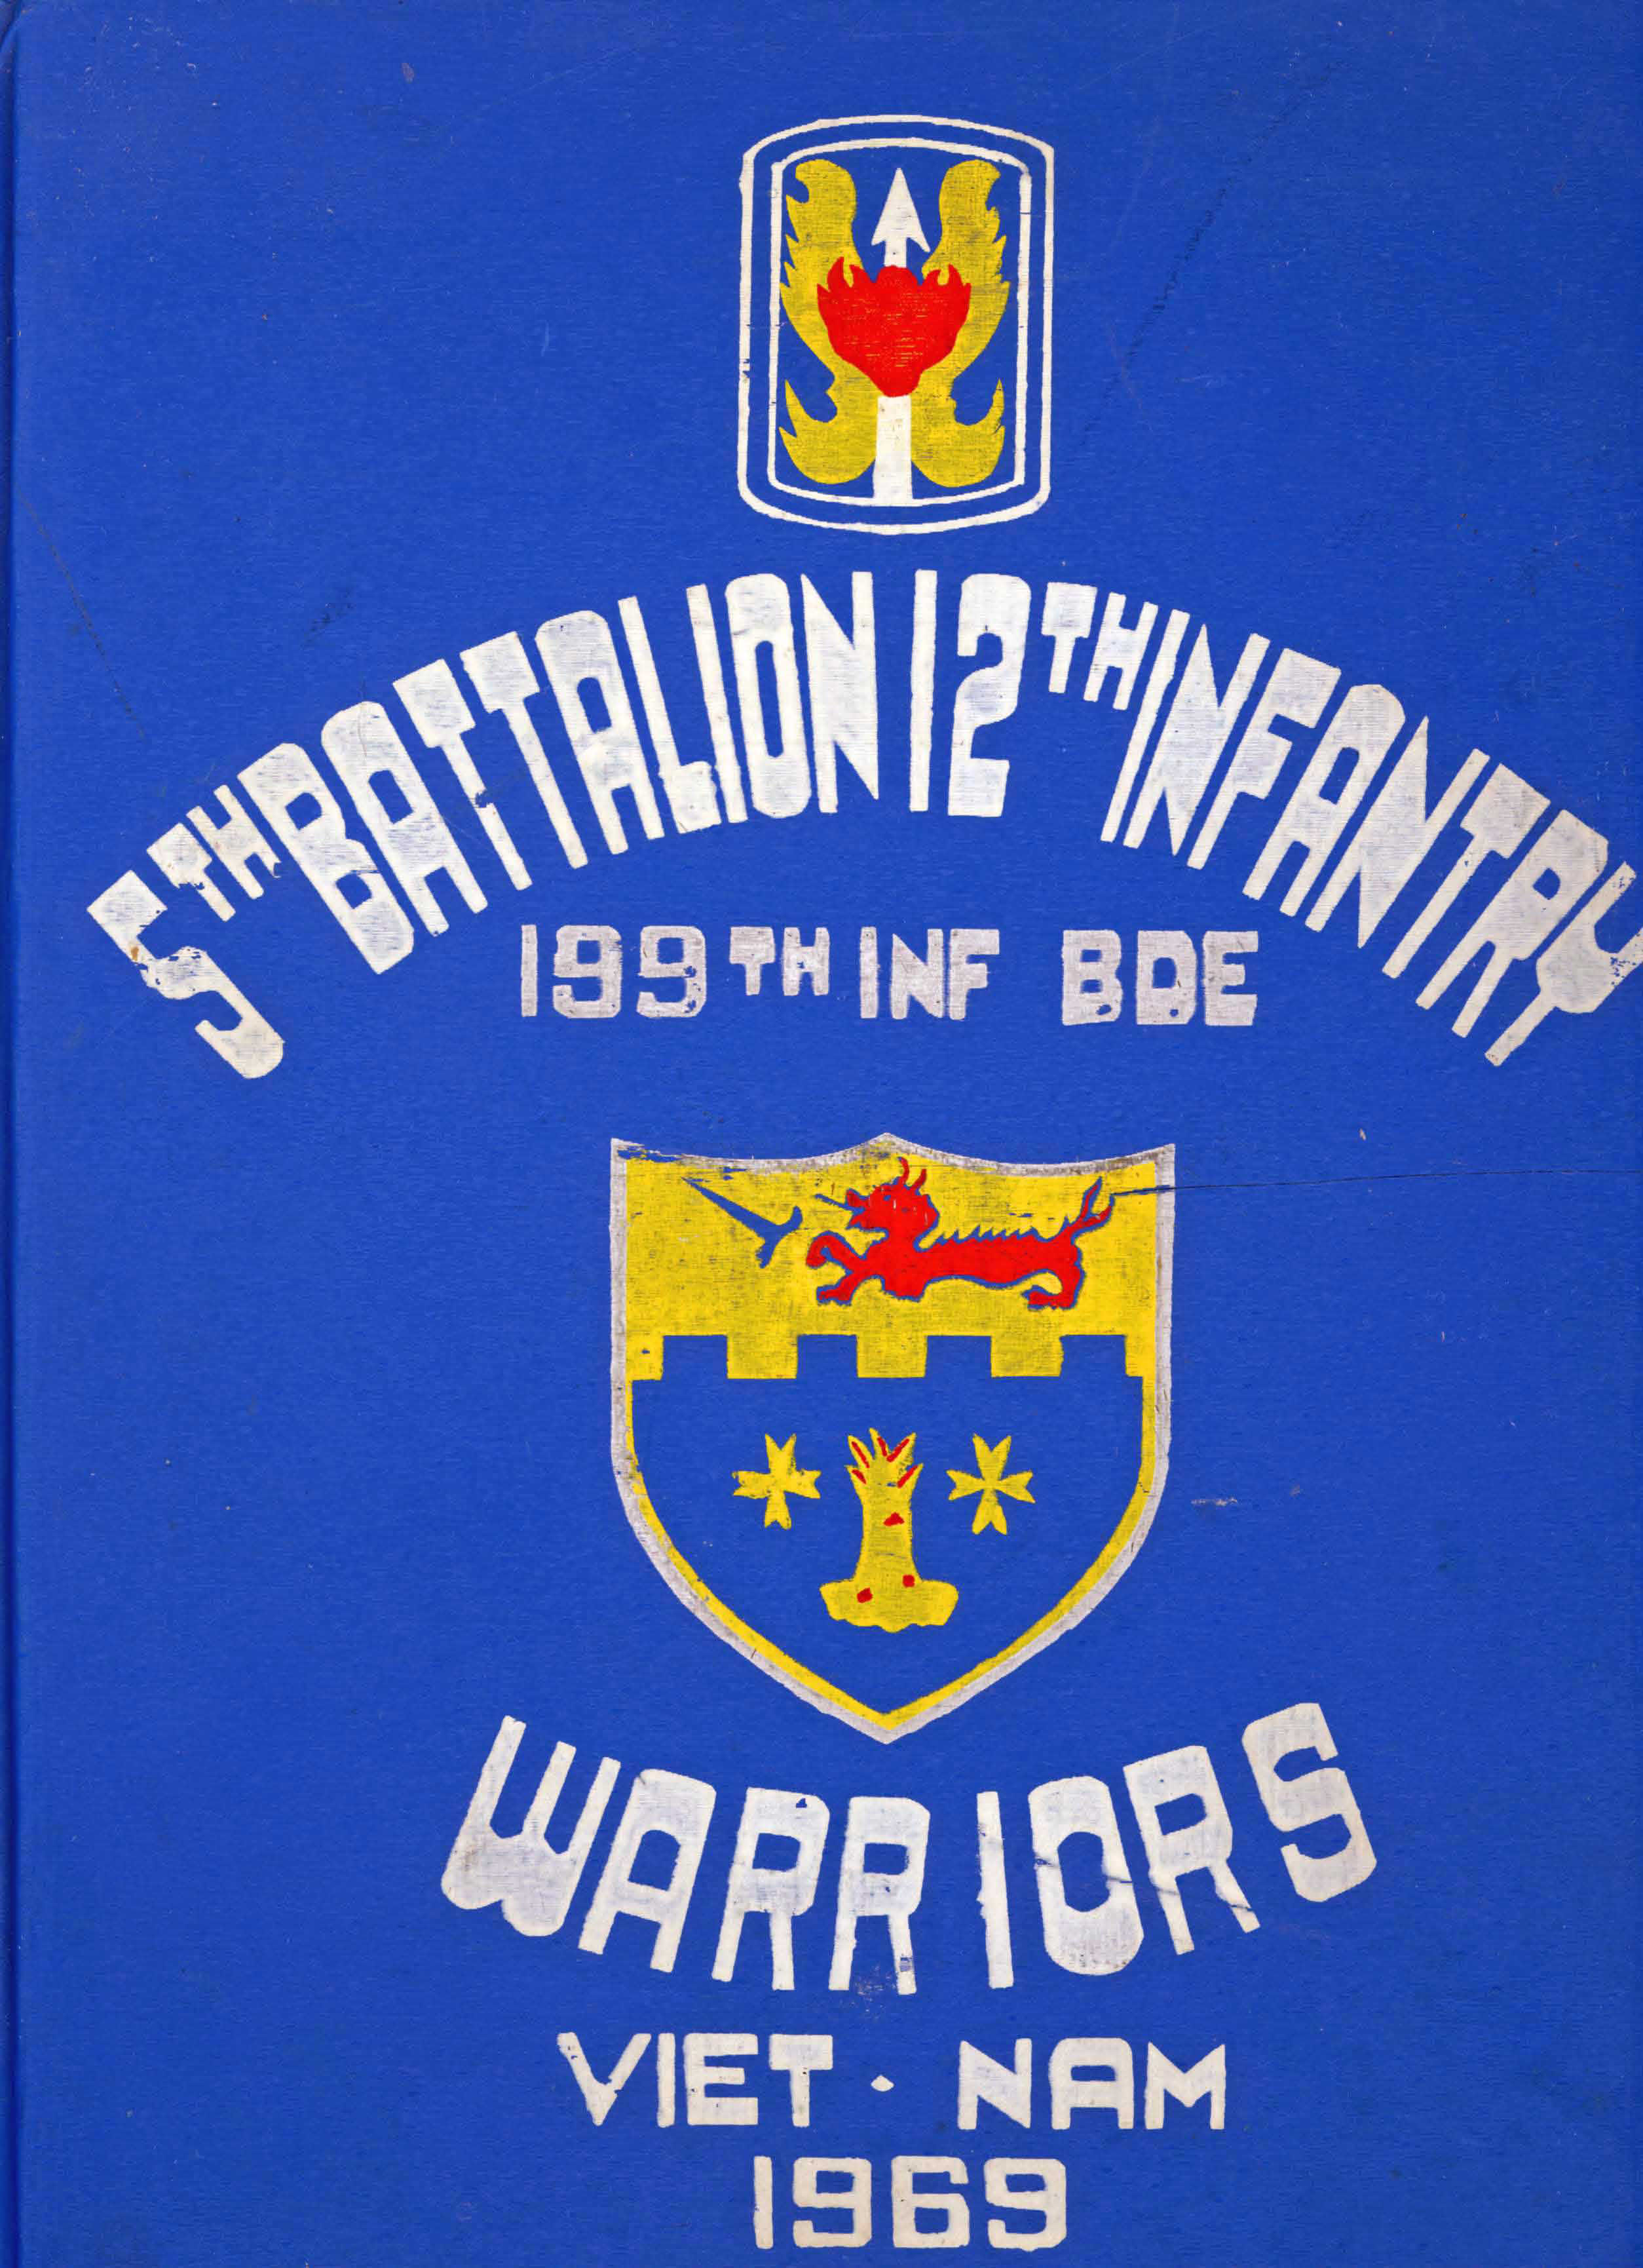 http://s415.photobucket.com/albums/pp235/199LIB/5-12th%20Infantry%20Yearbook%201969/